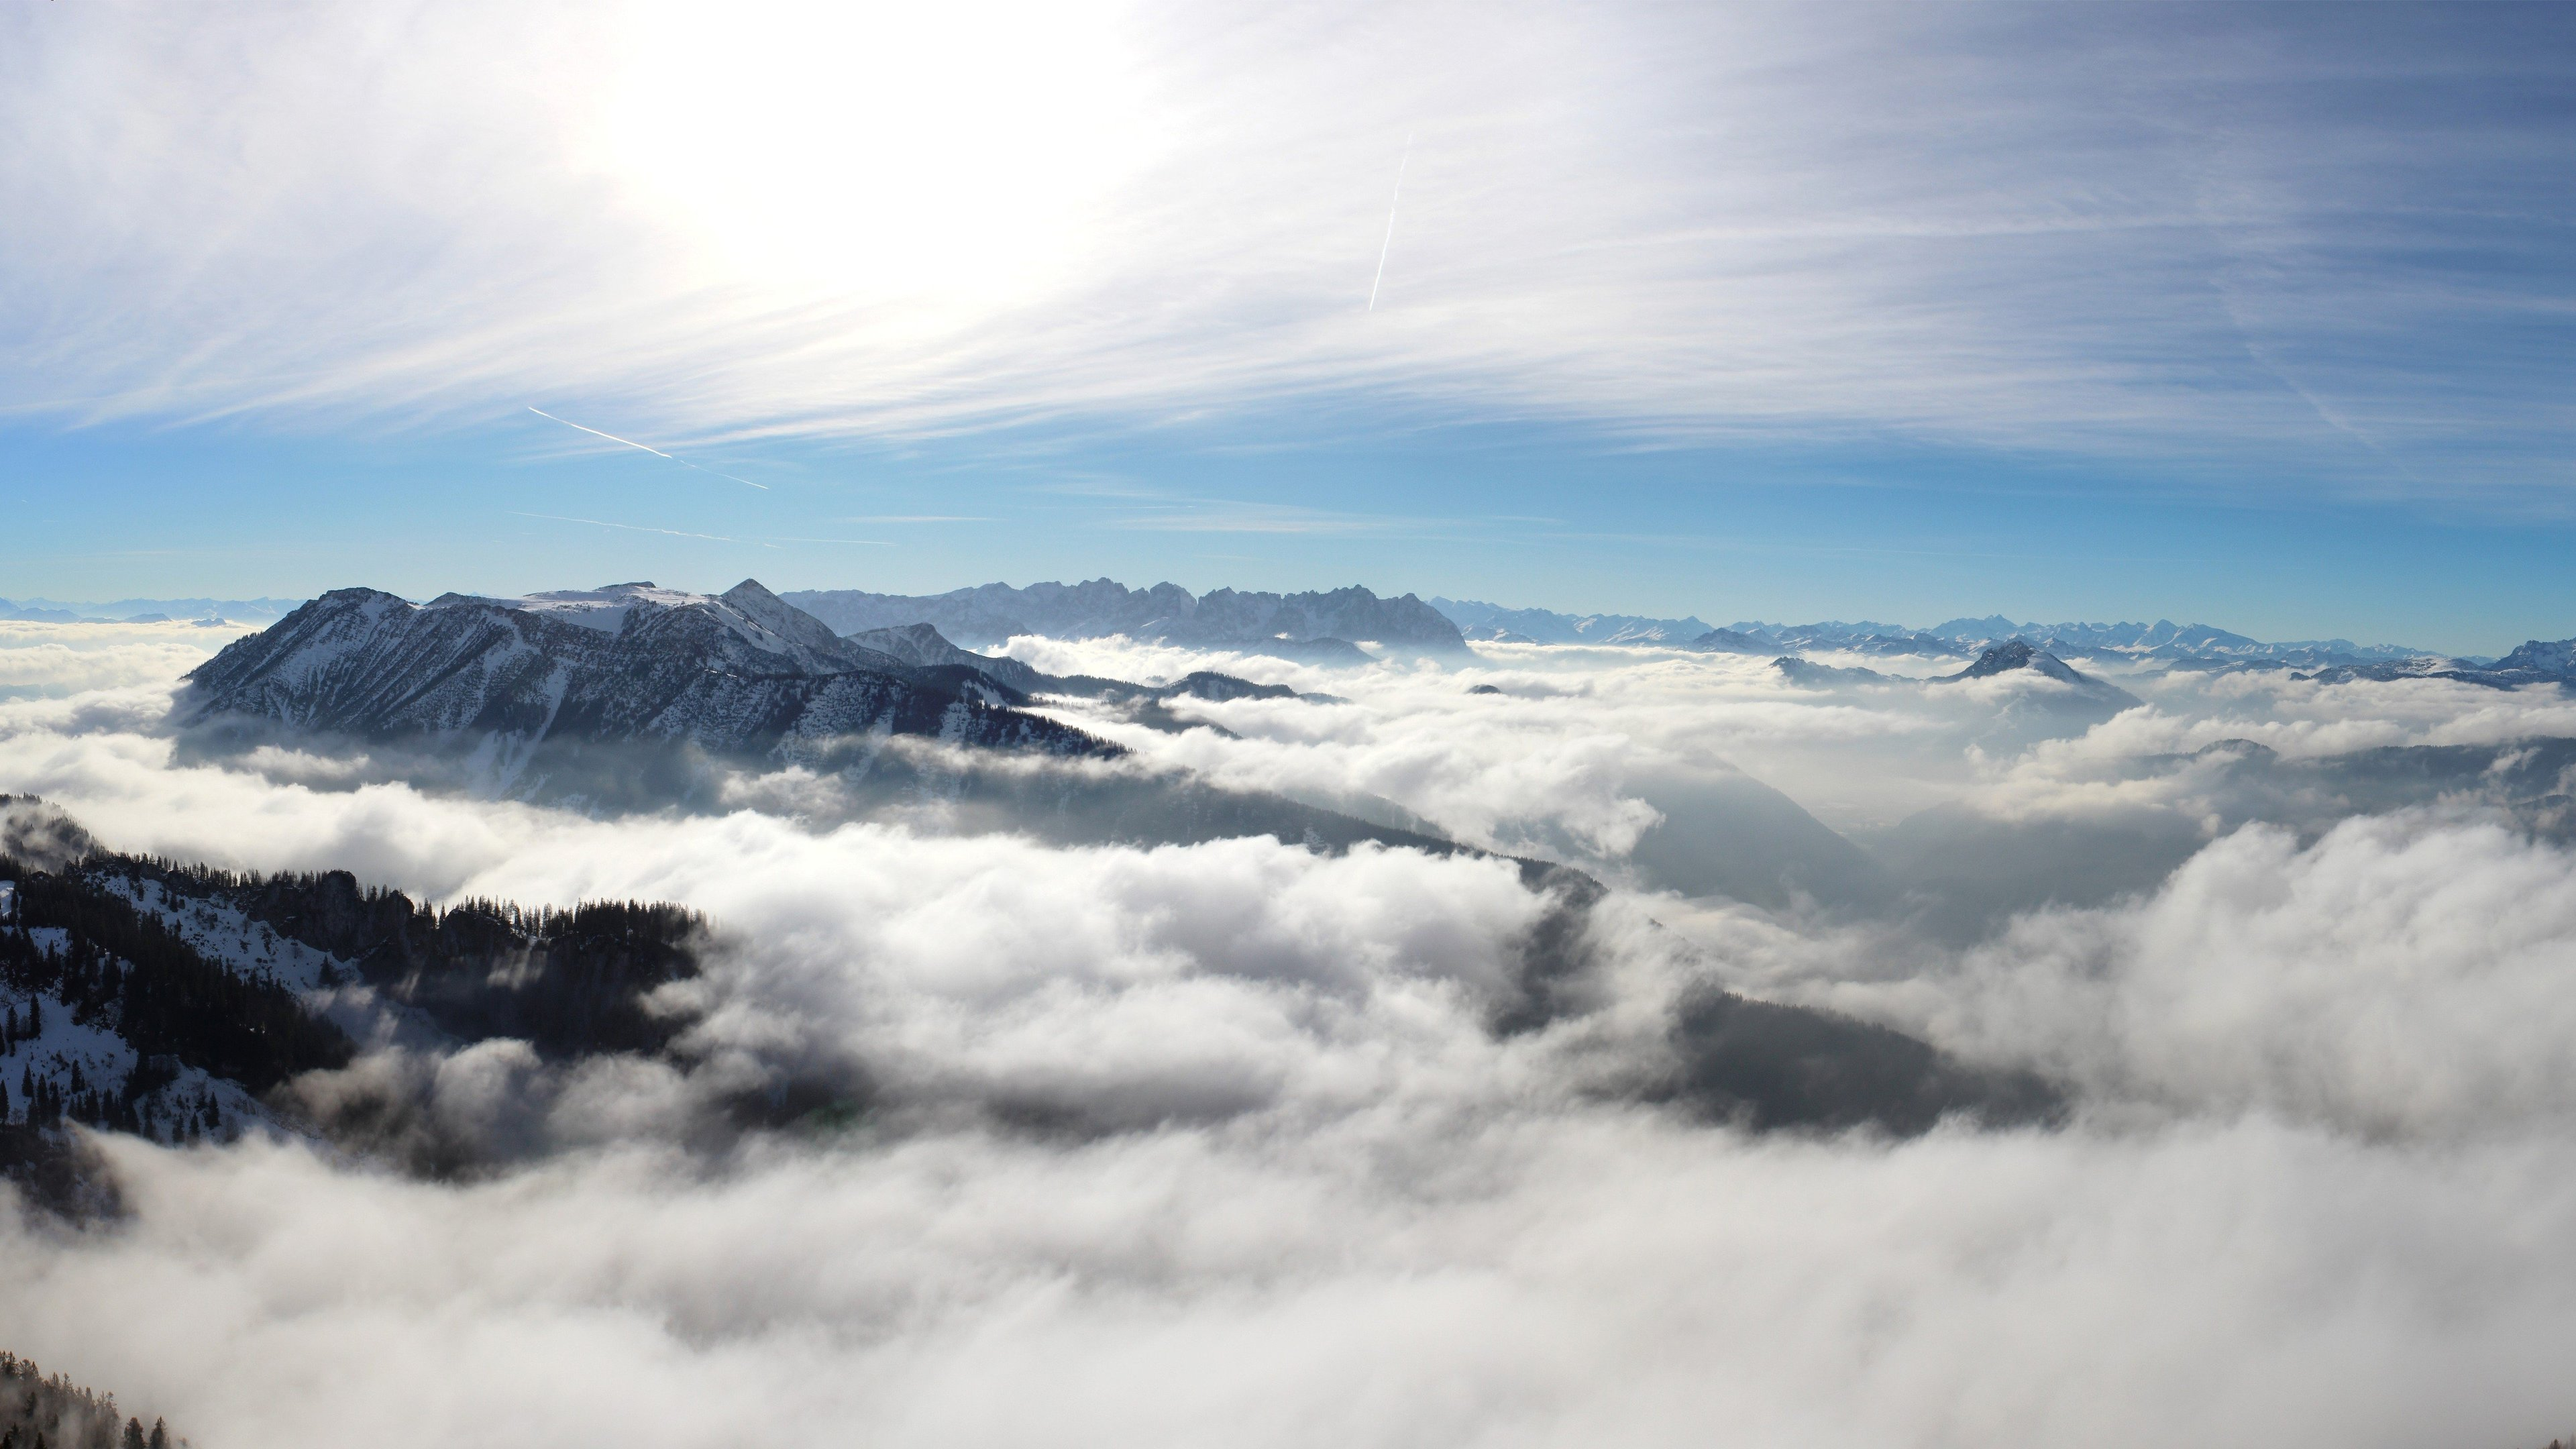 mountains cloudy 4k 1540131537 - Mountains Cloudy 4k - nature wallpapers, mountains wallpapers, cloudy wallpapers, clouds wallpapers